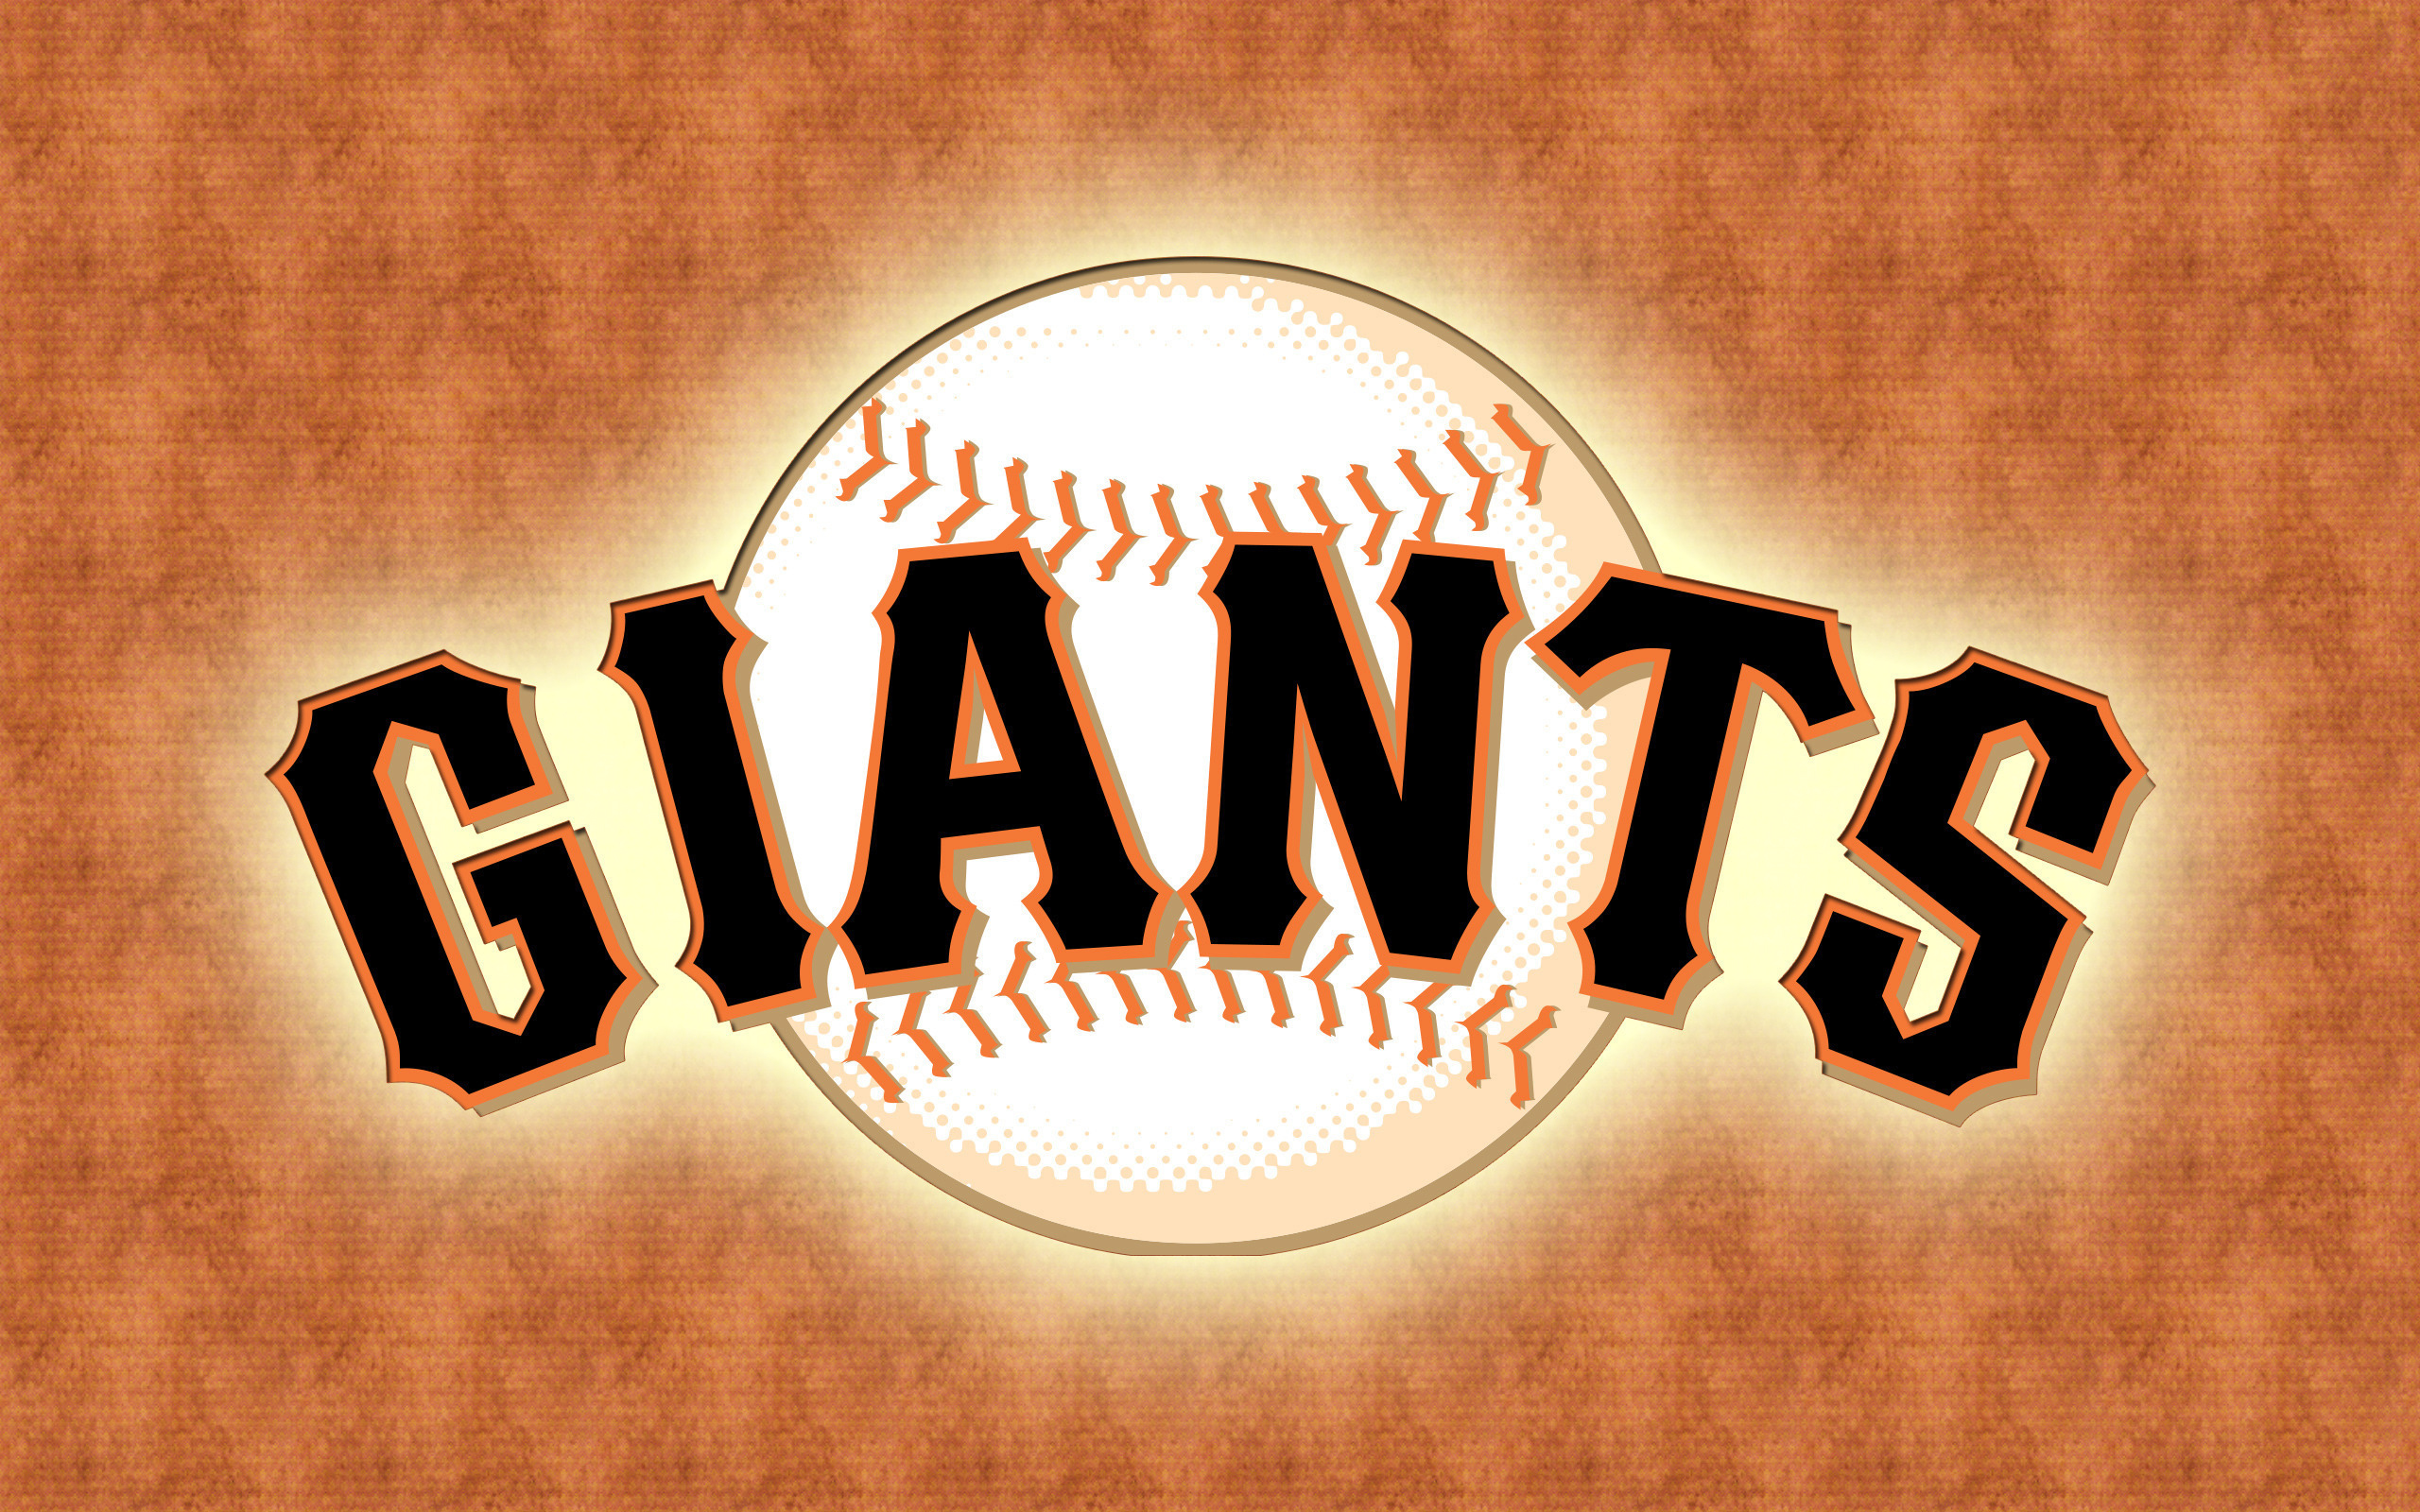 SF Giants Backgrounds 2560x1600